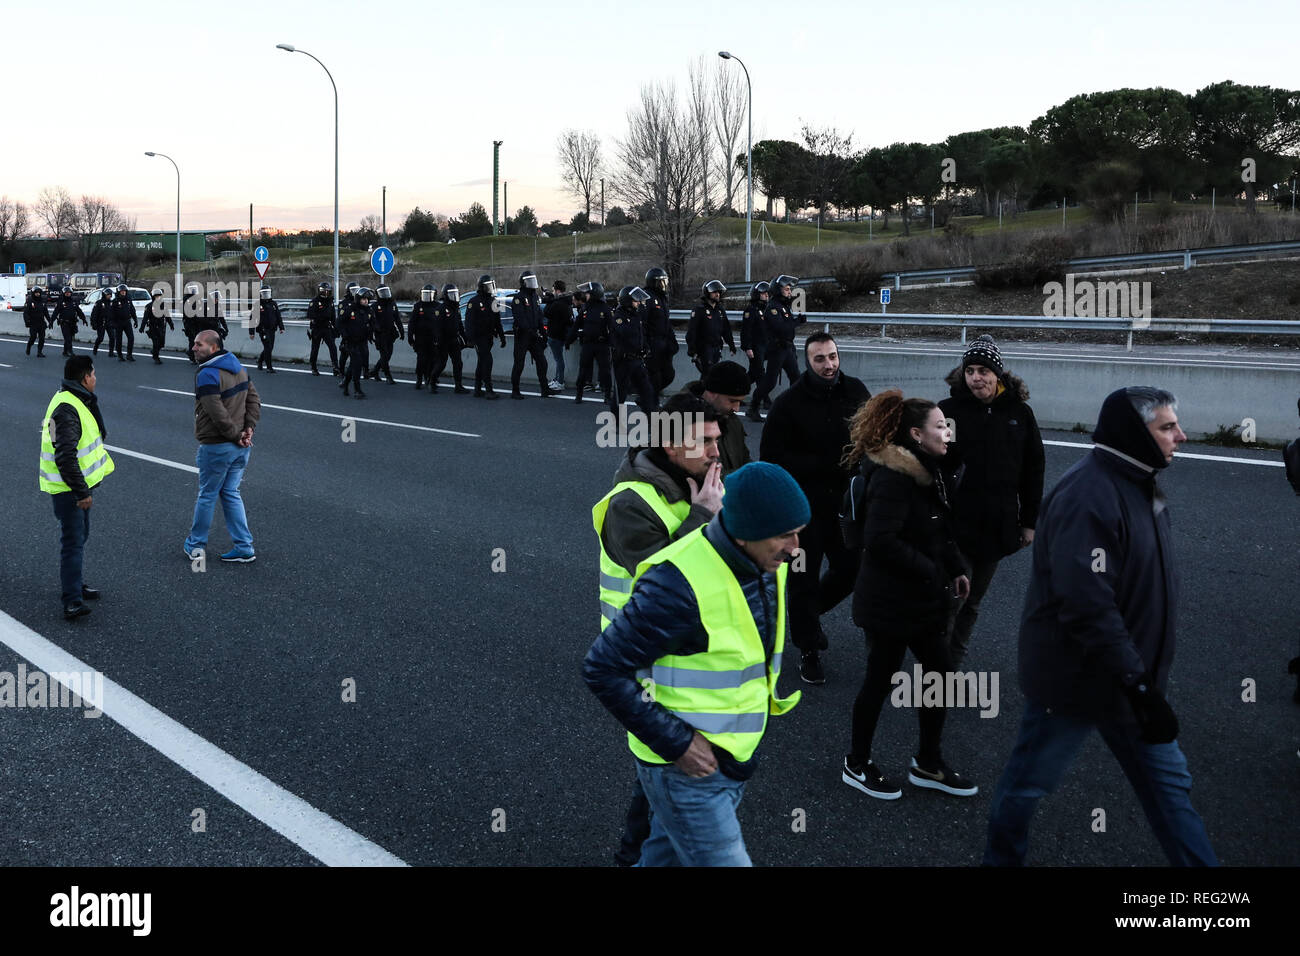 Madrid, Spain  21st Jan, 2019  The police try to get the